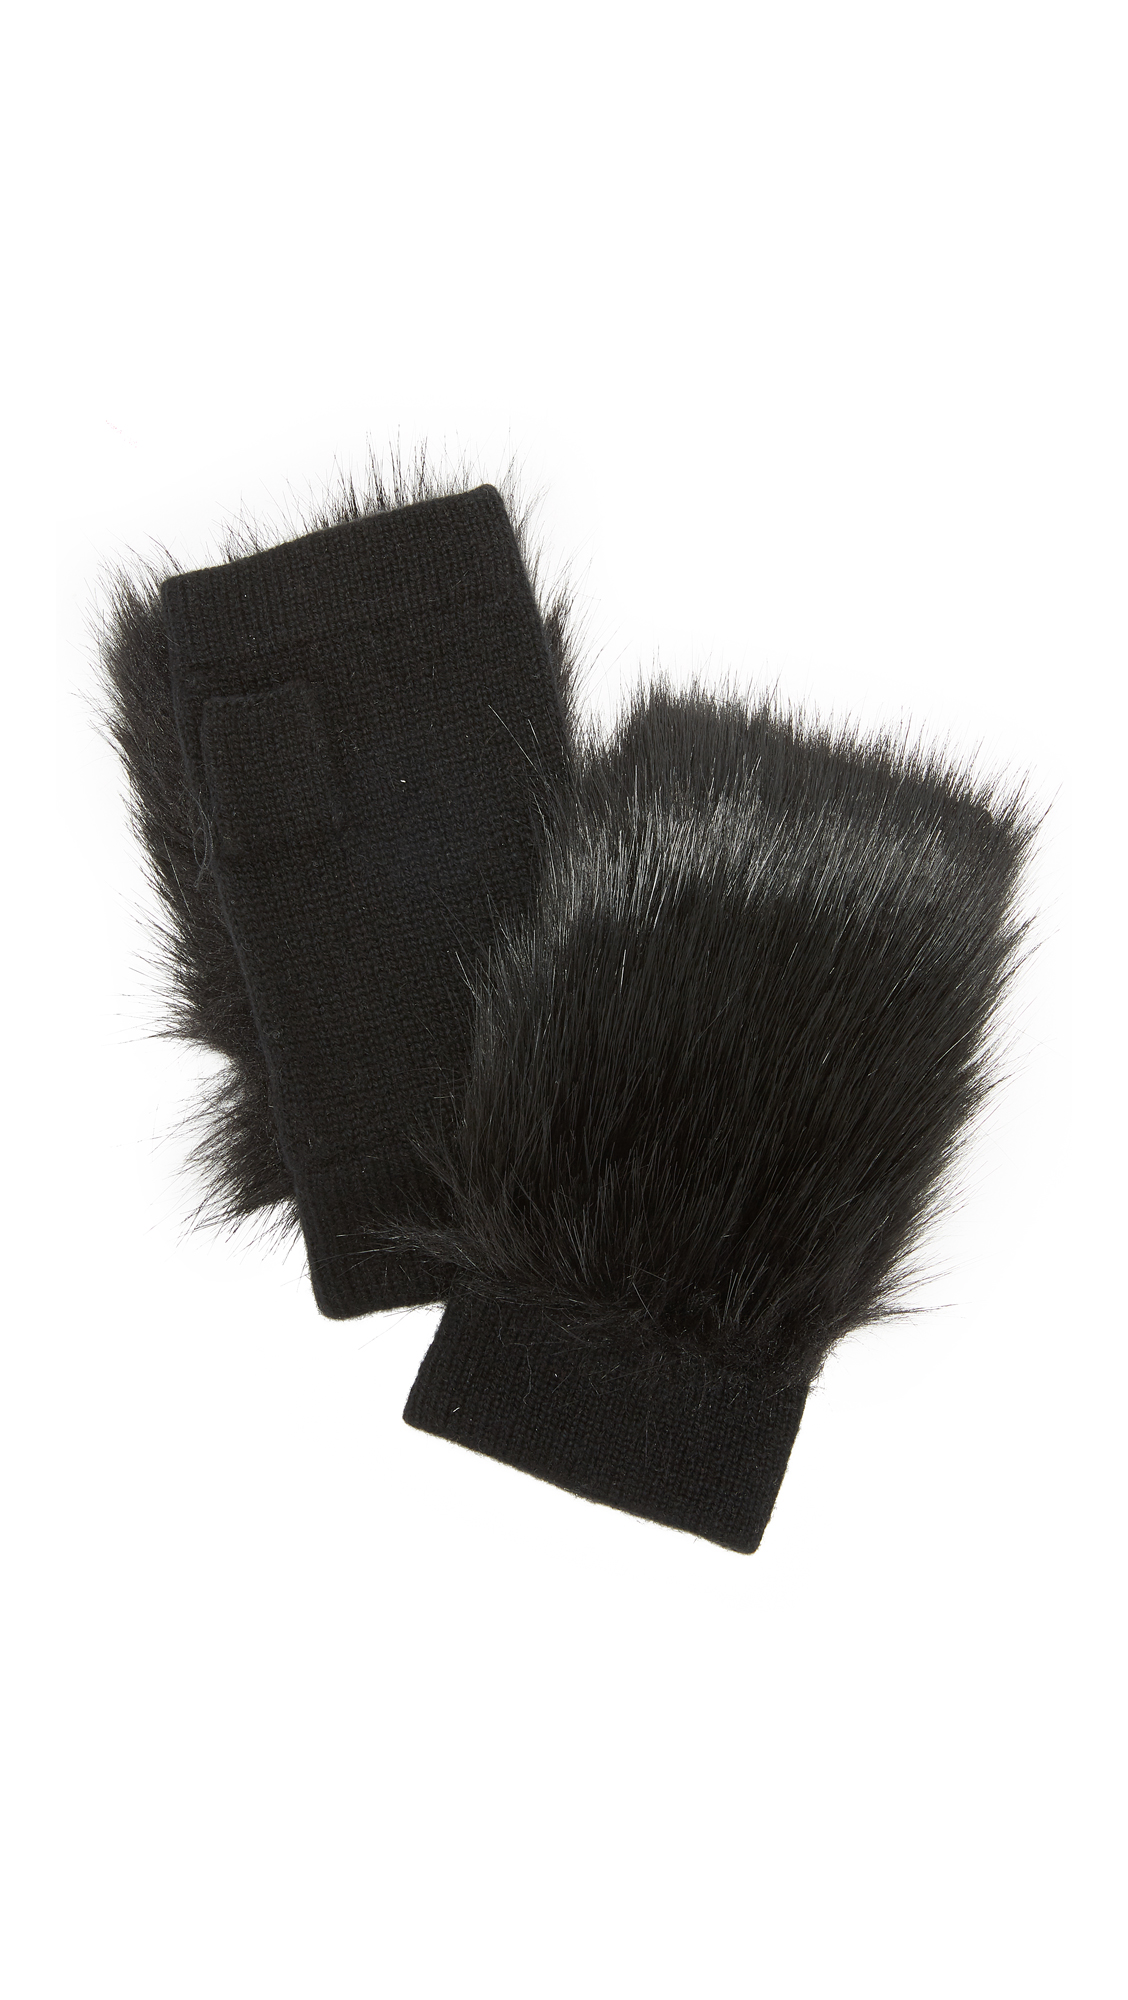 Carolina Amato Faux Fur Knit Fingerless Gloves - Black